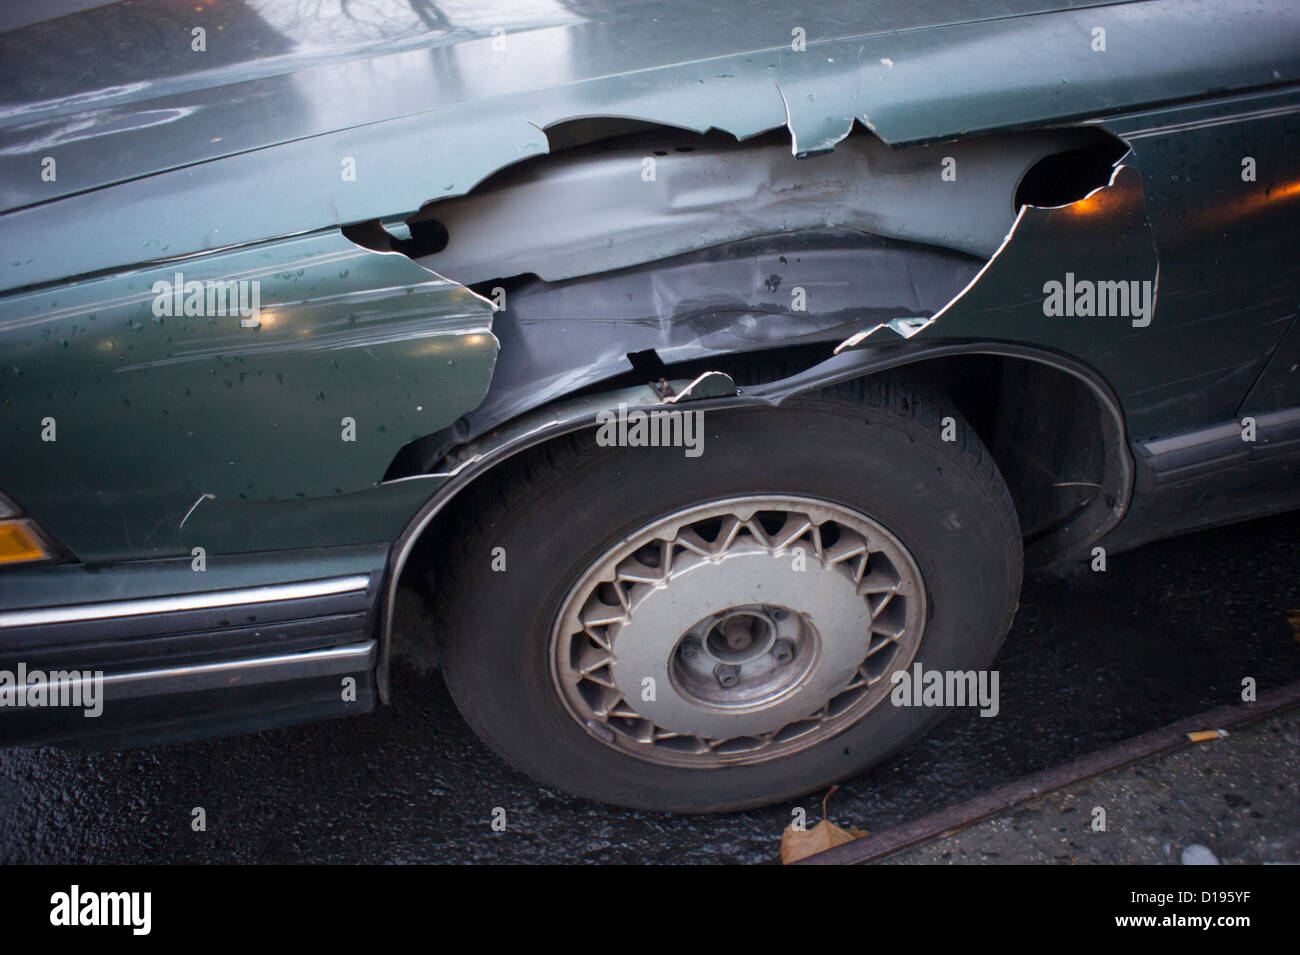 Automobile involved in a minor fender-bender collision is seen parked on the street in the New York neighborhood - Stock Image